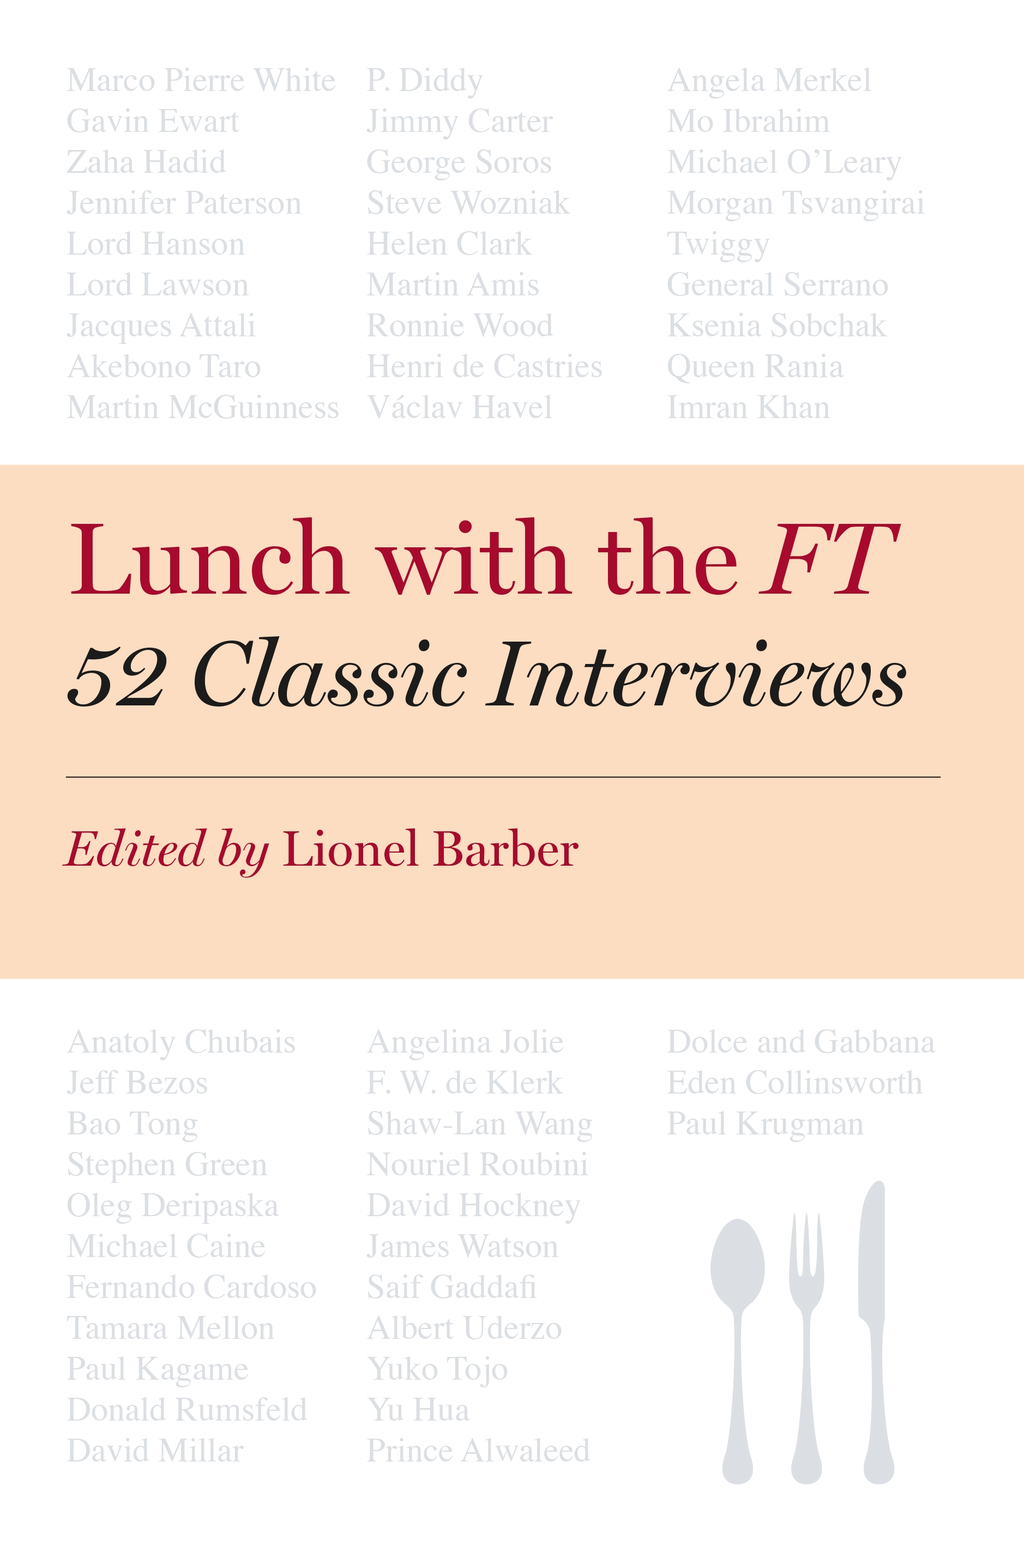 Lunch with the FT 52 Classic Interviews